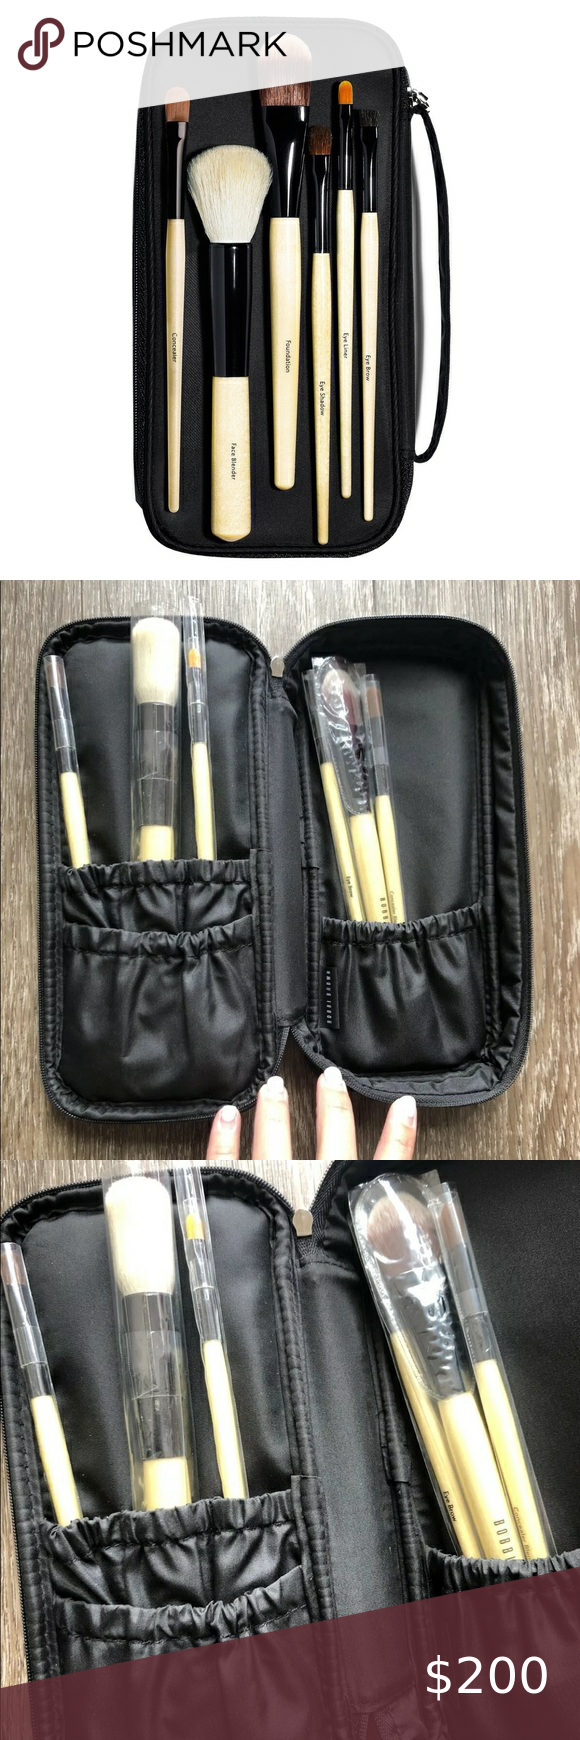 NEW Bobbi Brown Basic Brush 6Piece Collection in 2020